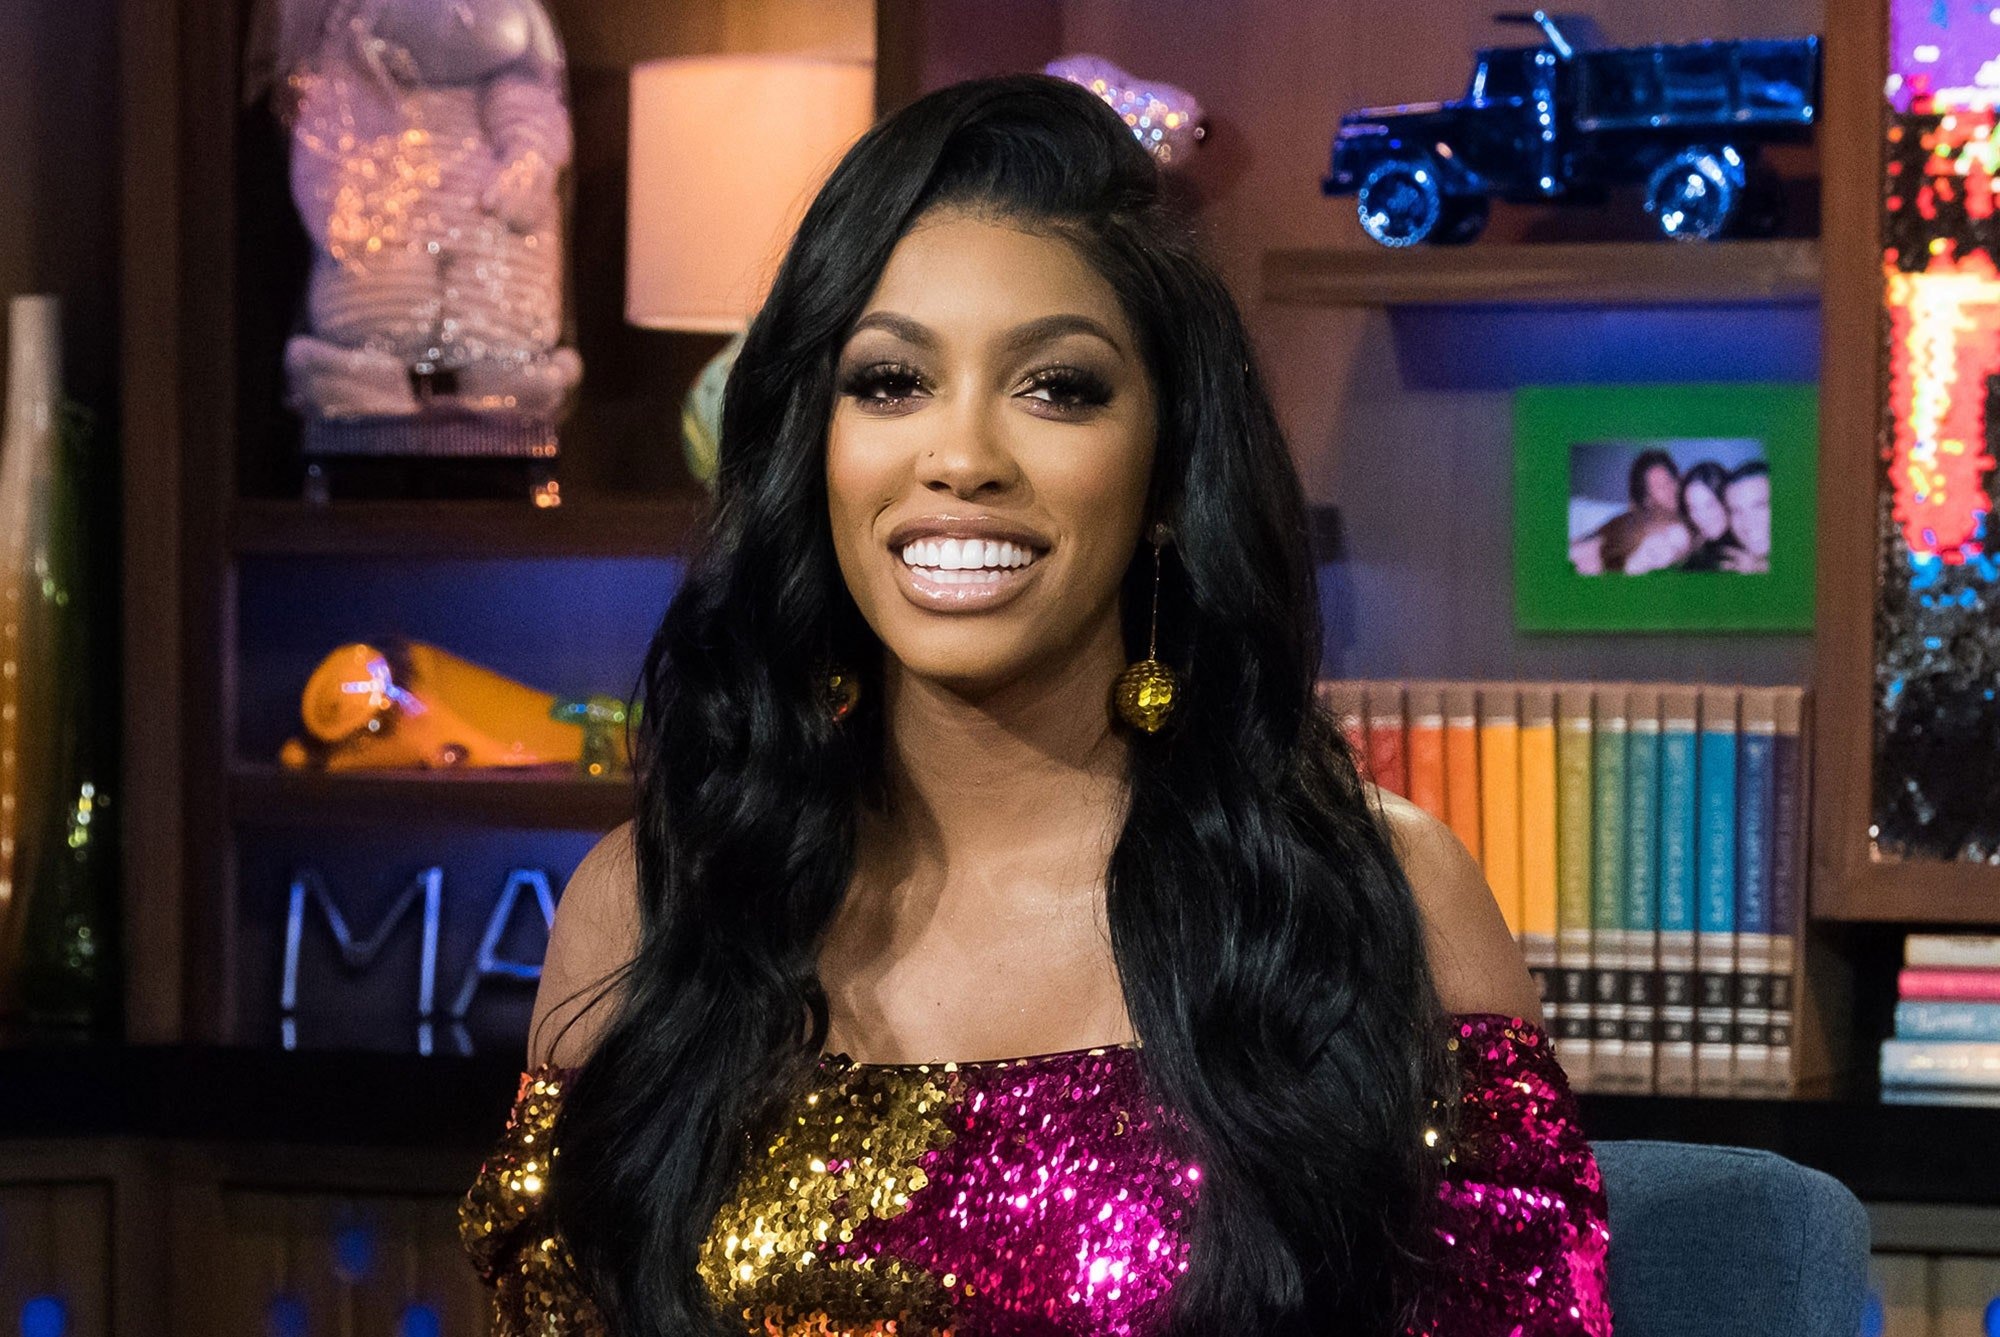 Porsha Williams Shares A Video With Pilar Jhena And They